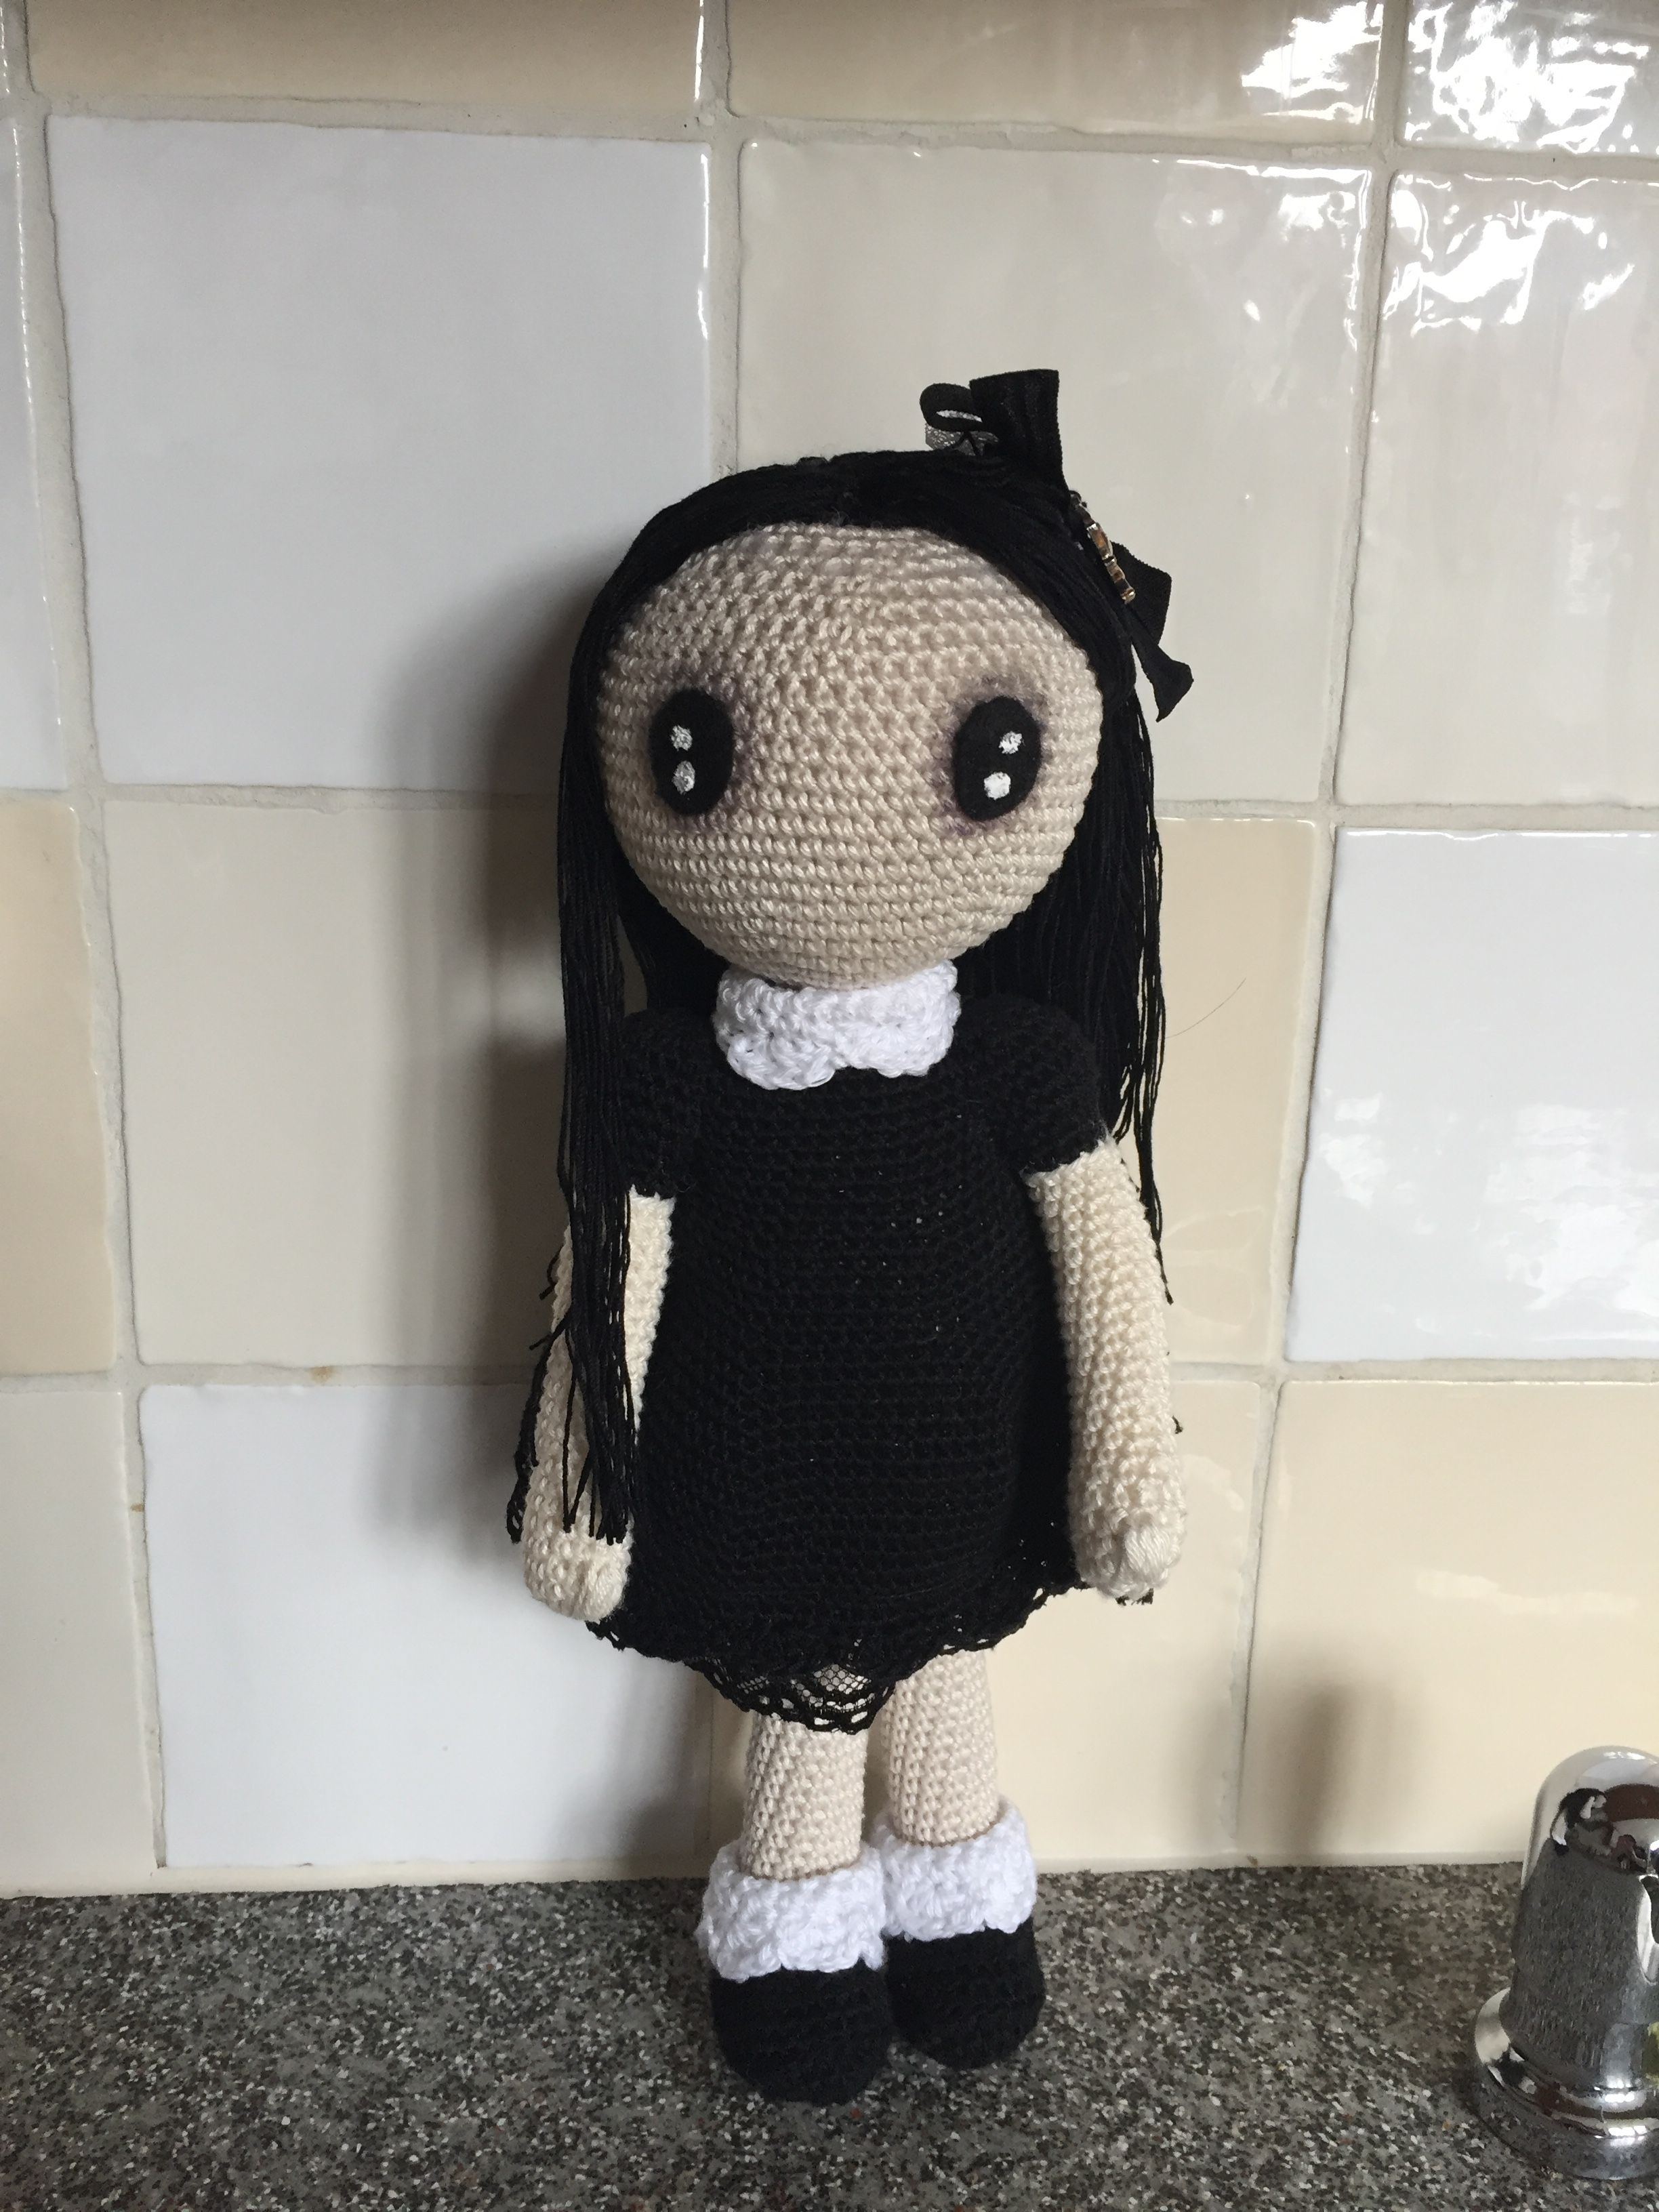 Gothic lolita with voodoo doll pattern by rosana gonzlez gothic gothic lolita crochet pattern by rosana gonzlez bankloansurffo Images